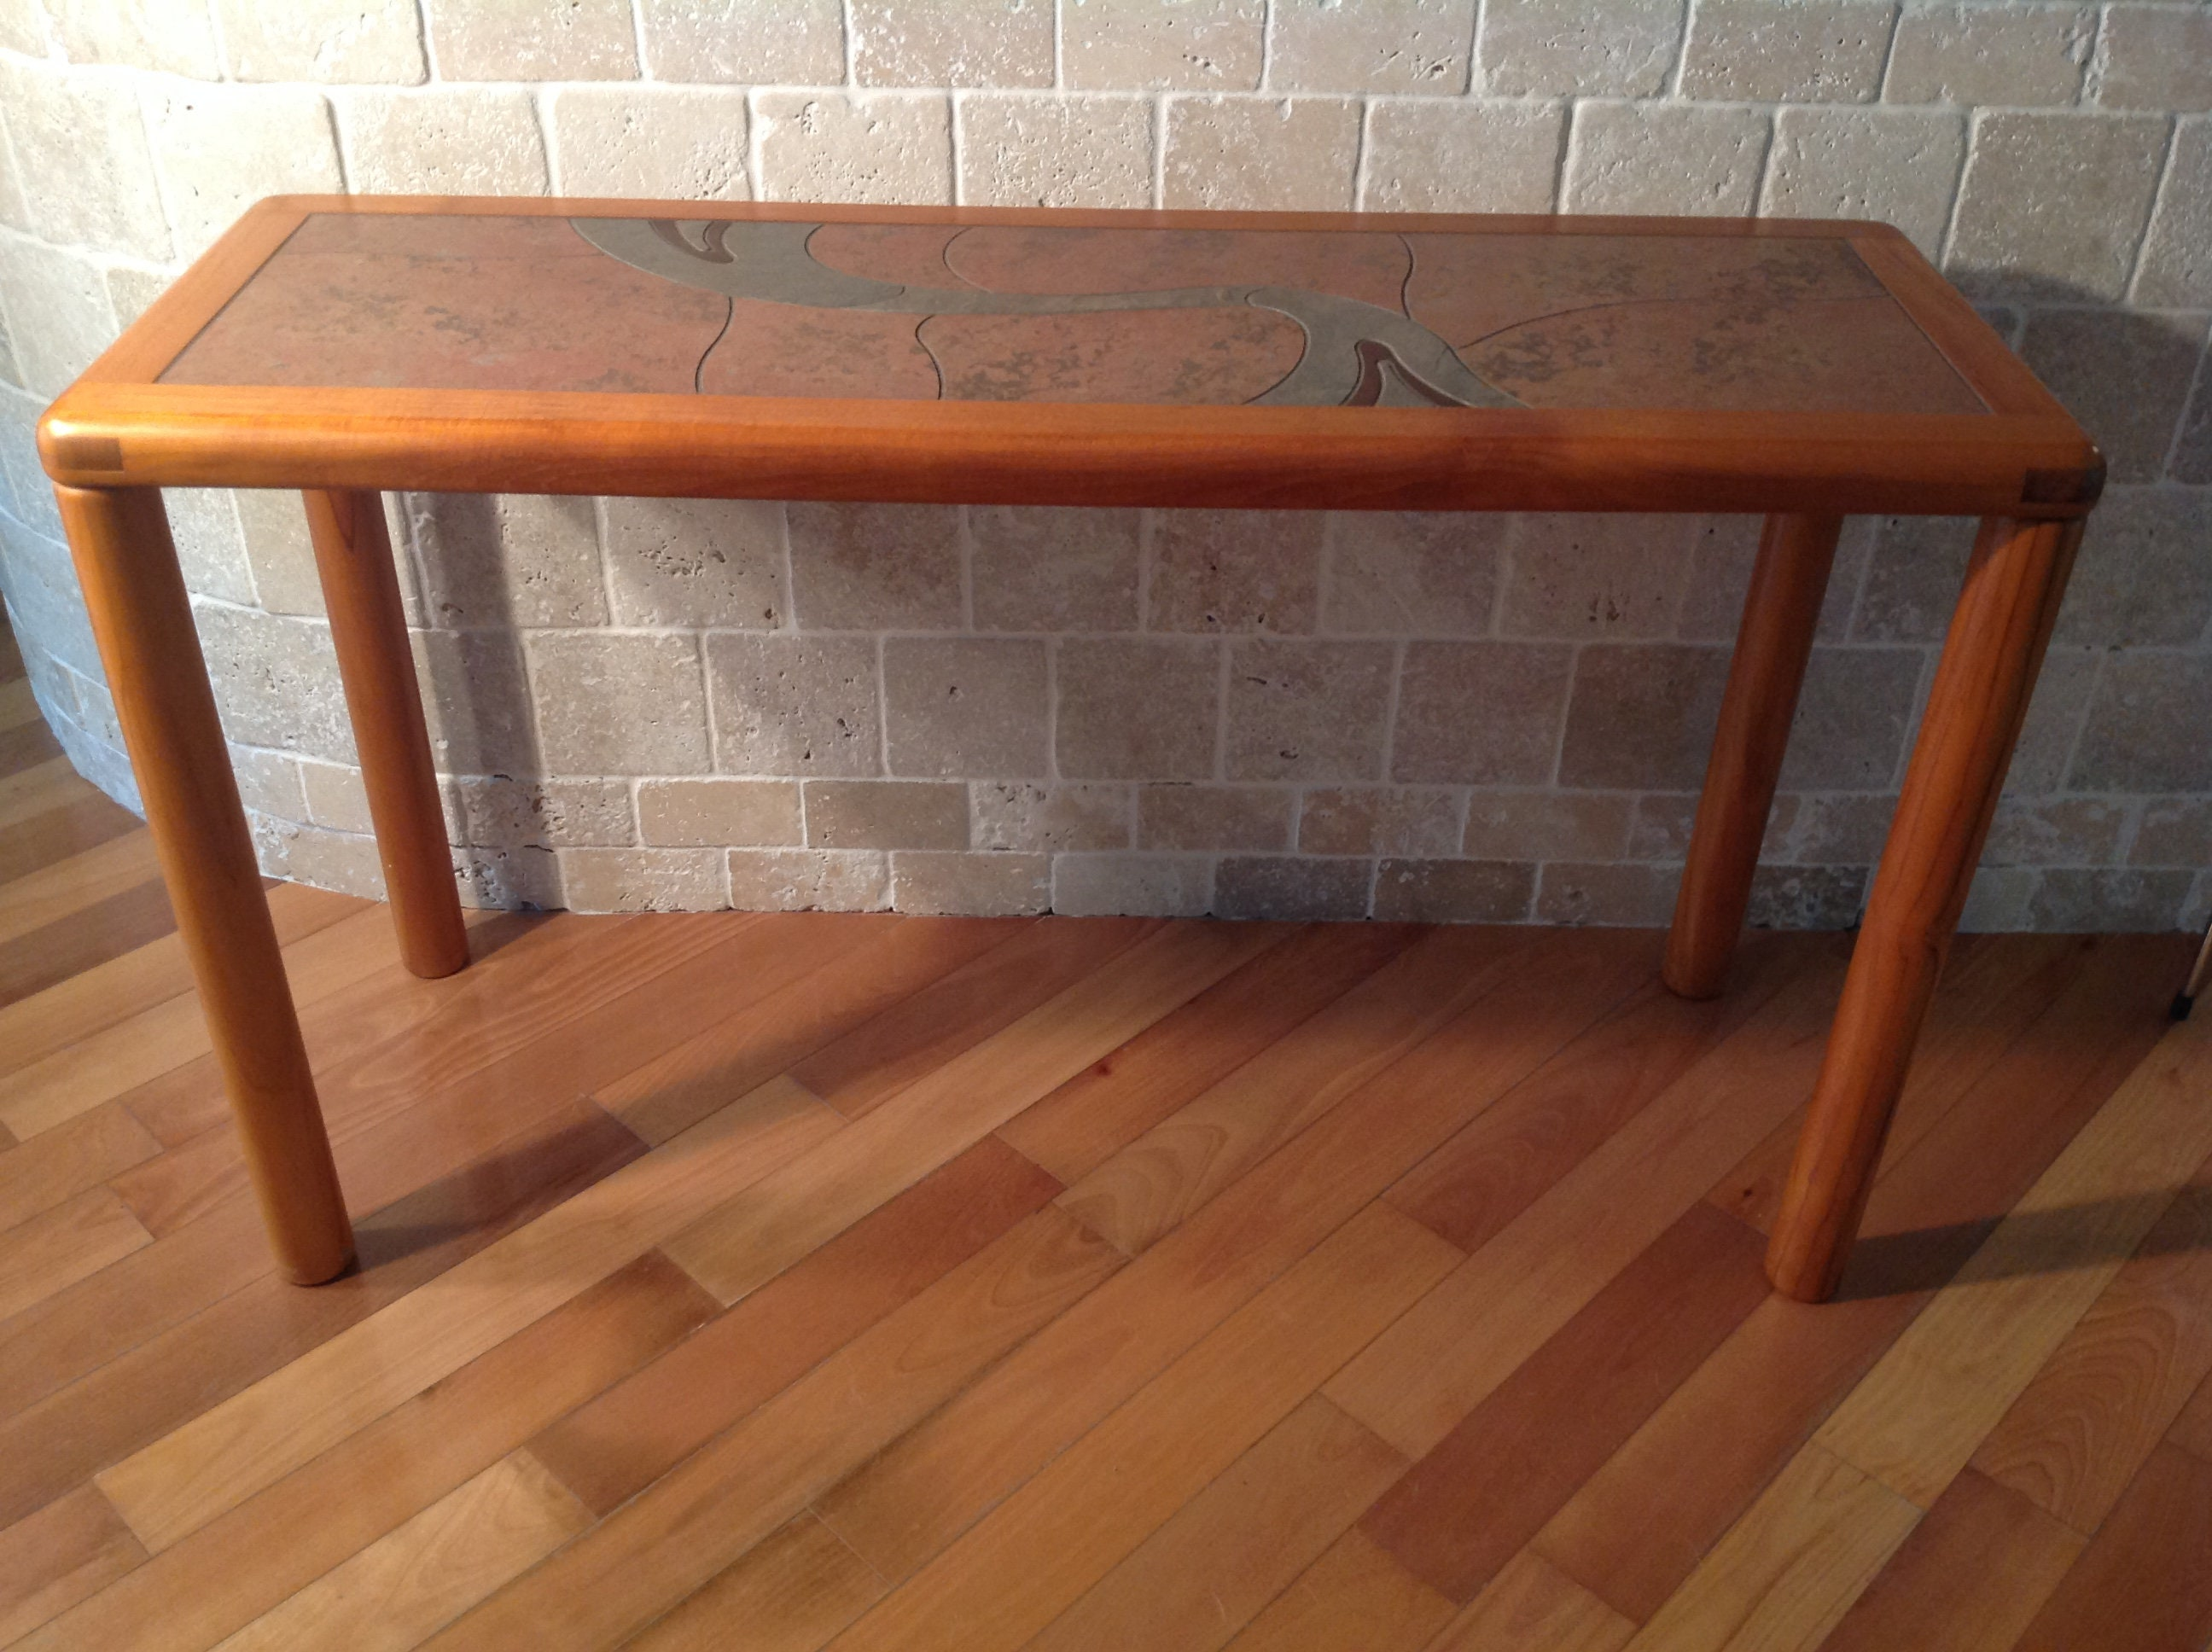 Picture of: Danish Teak With Tile Top Console Table By Haslev